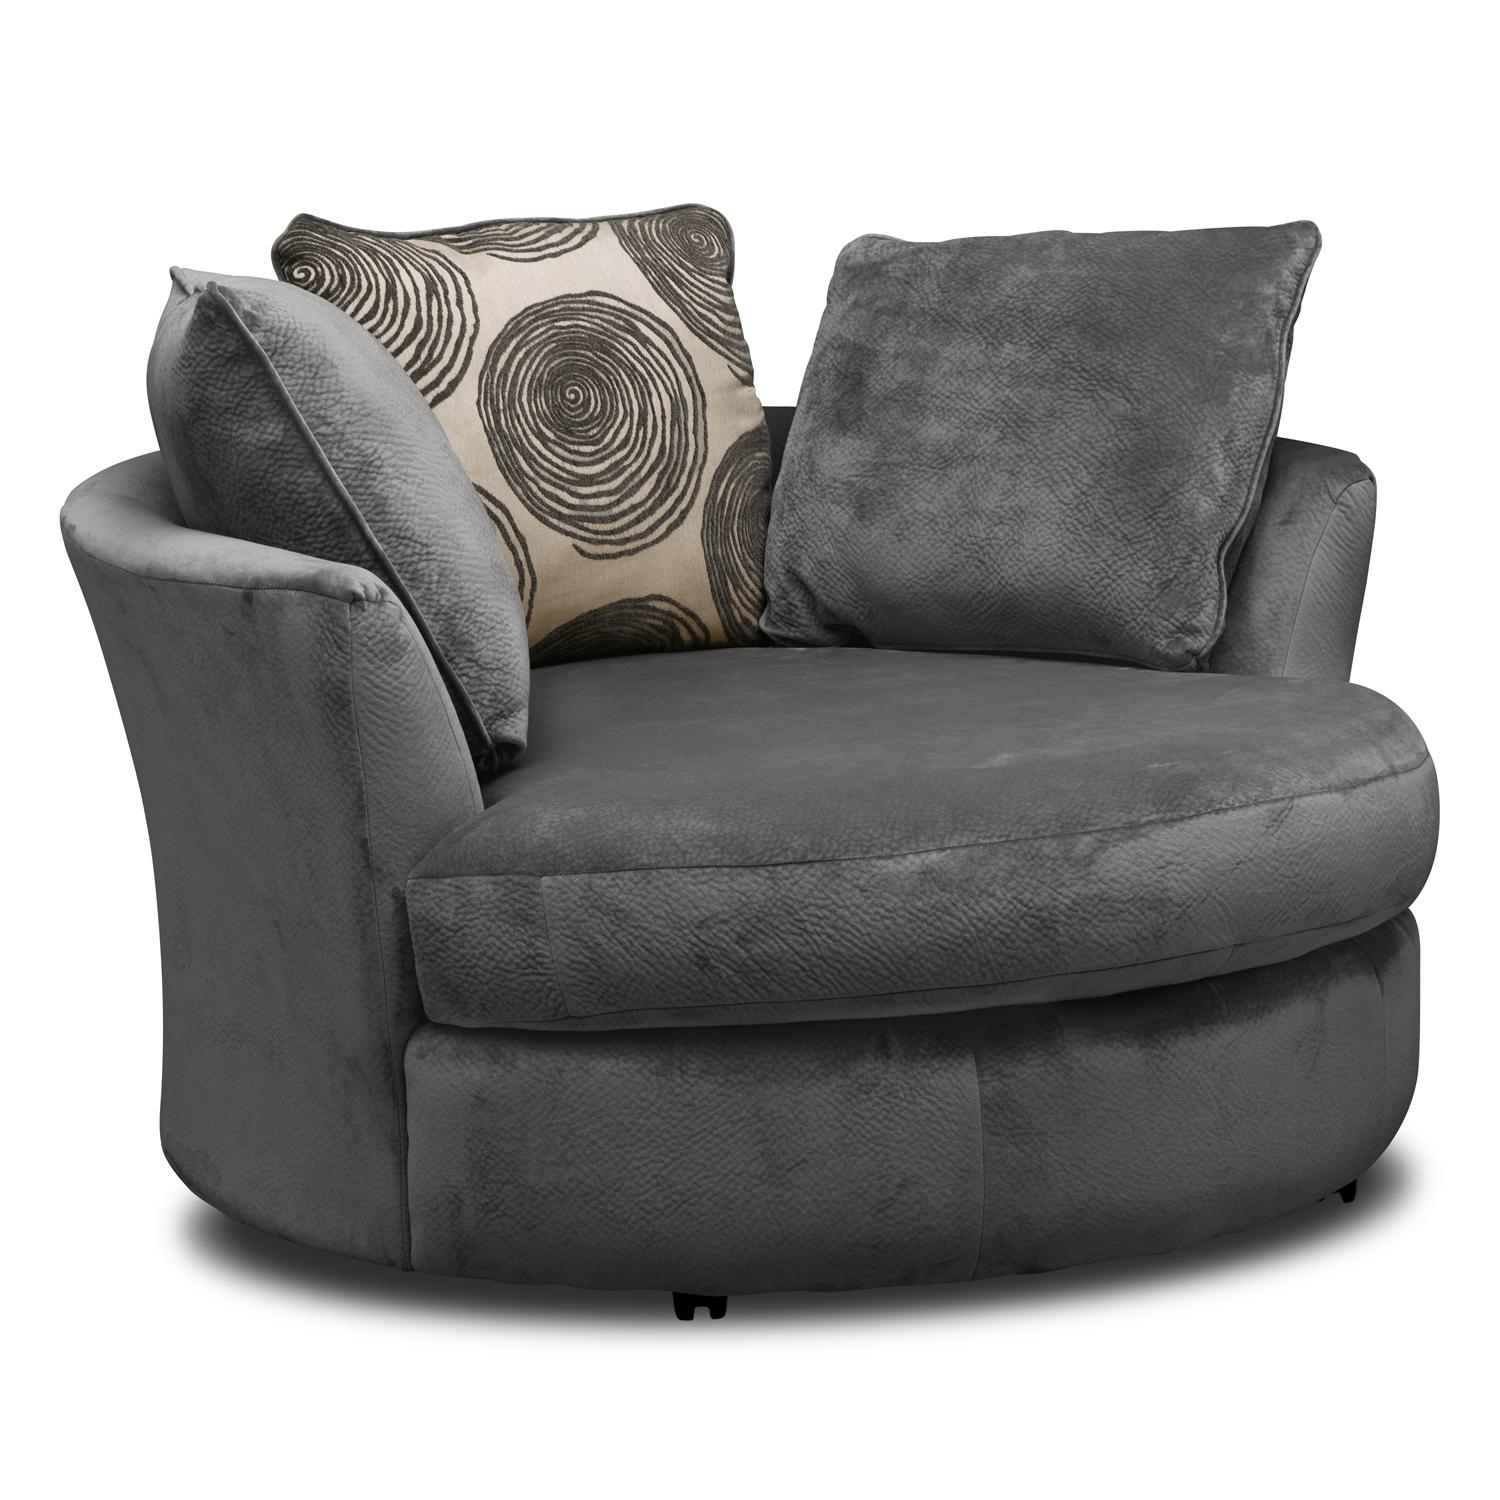 Round Sofa Chair Throughout Round Sofa Chairs (Photo 1 of 20)